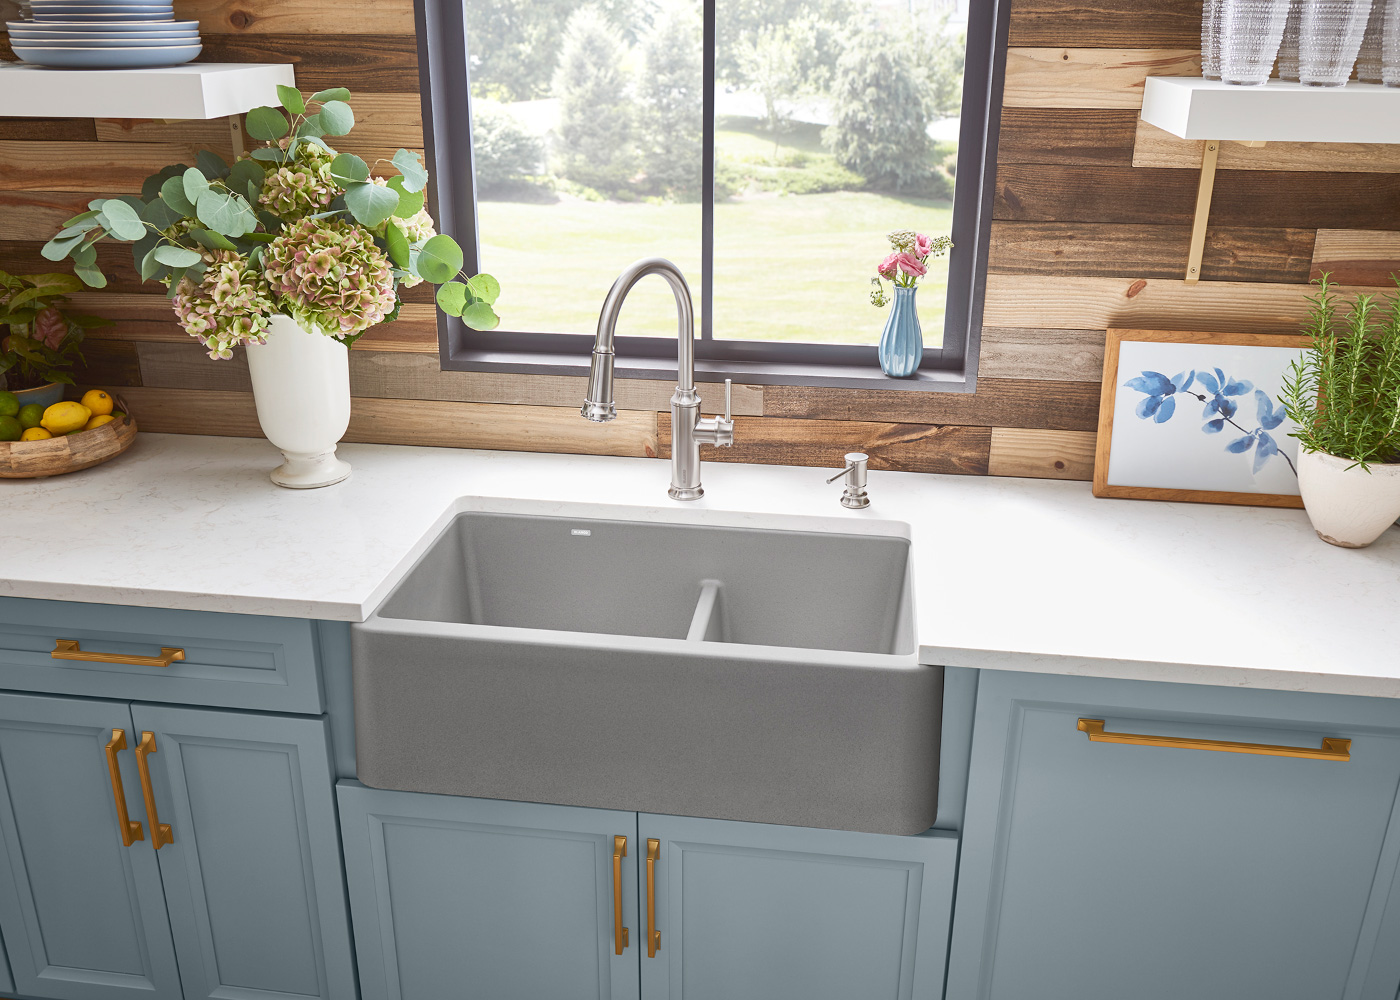 Interior photo of a BLANCO kitchen with neutral sink